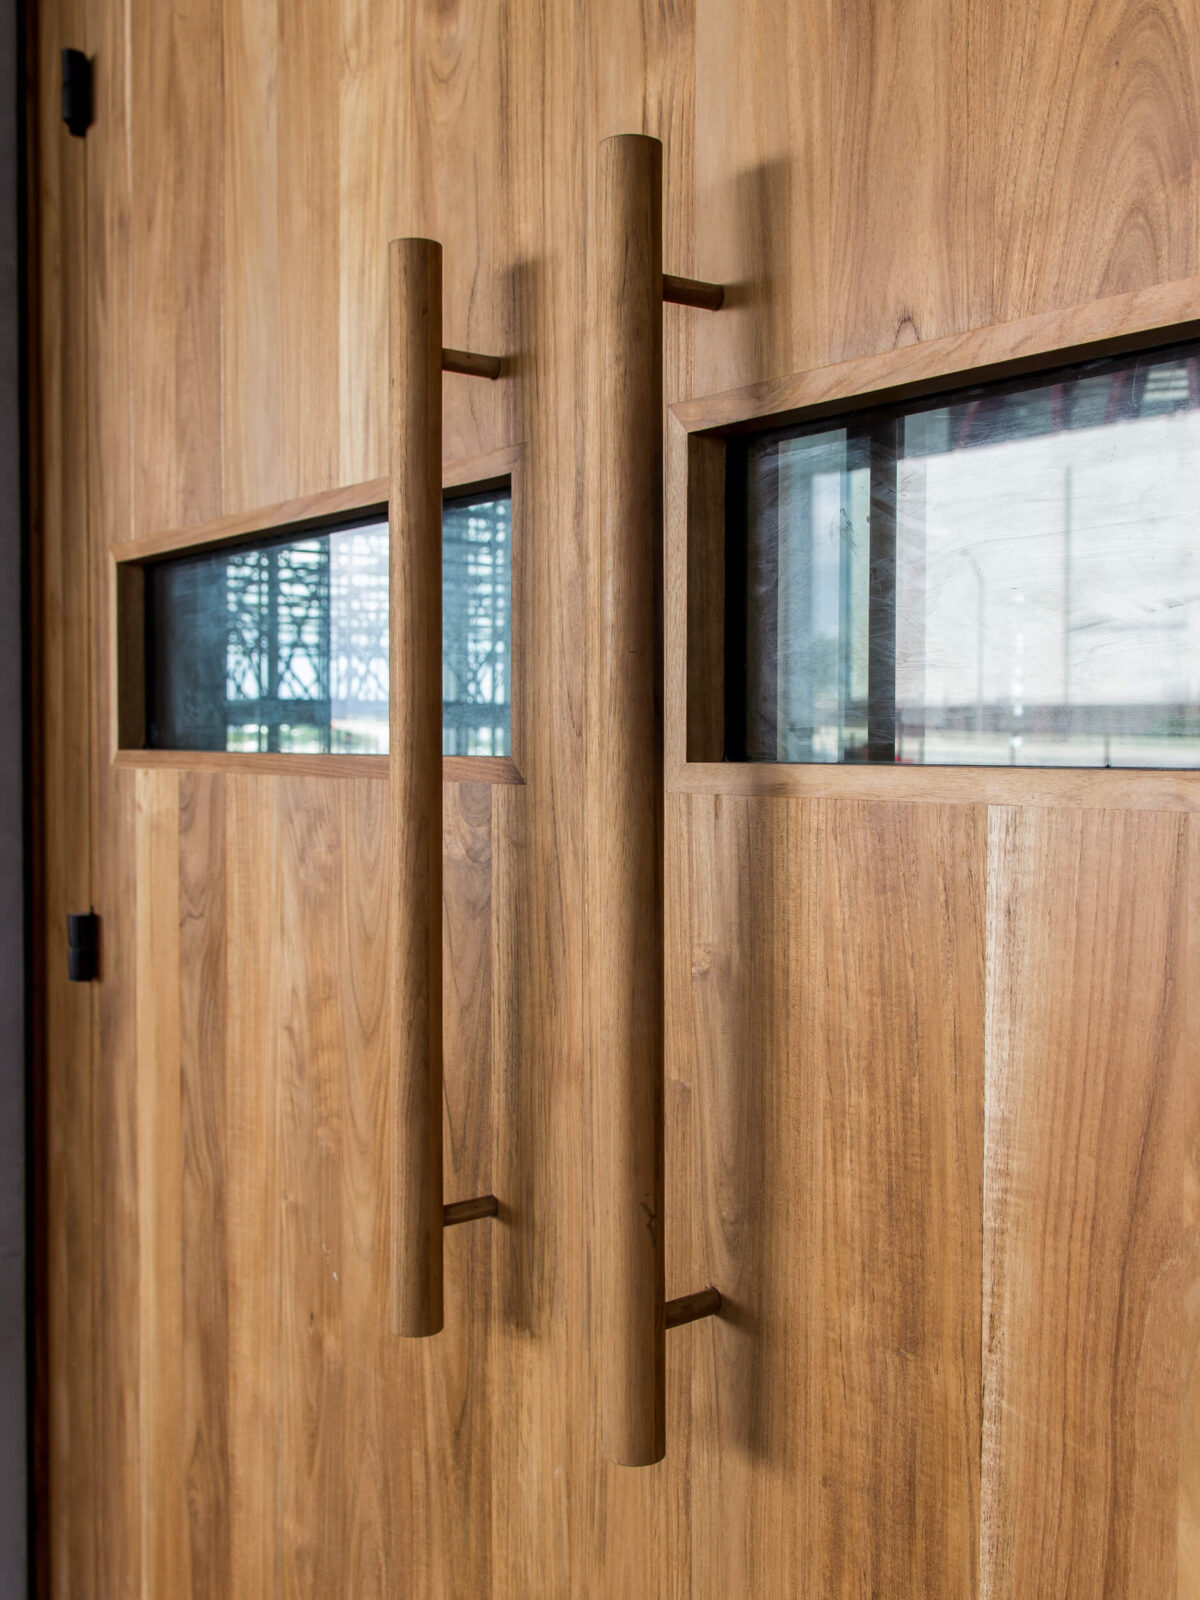 TEAK ENTRANCE DOORS DETAIL.